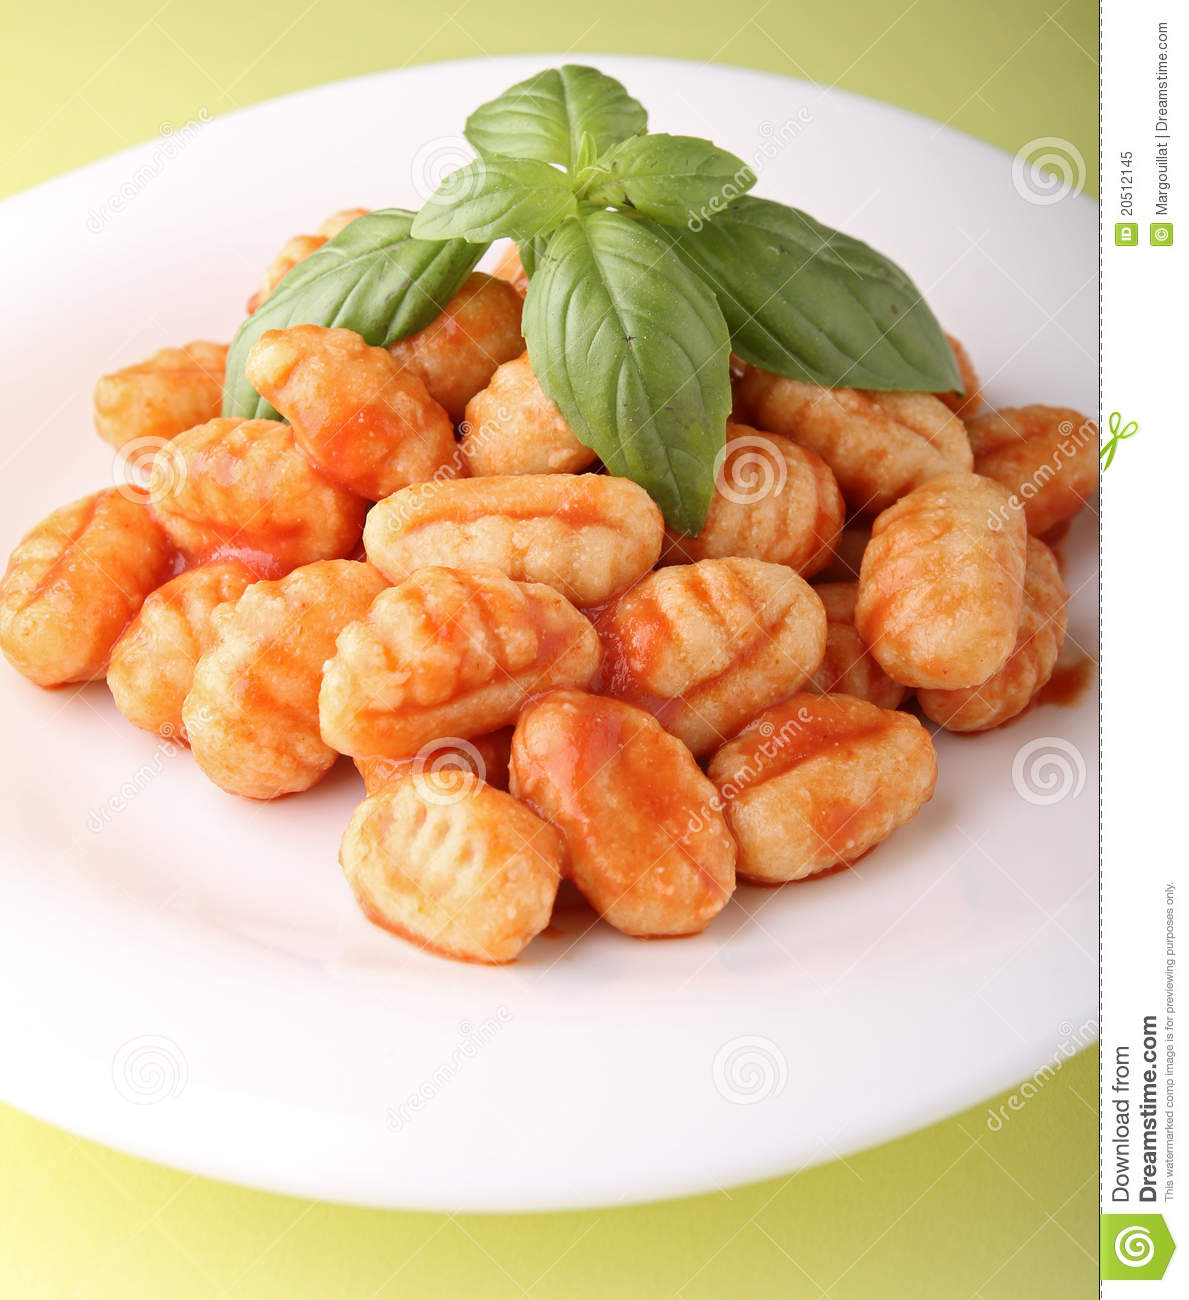 Plate of gnocchi with tomato sauce.